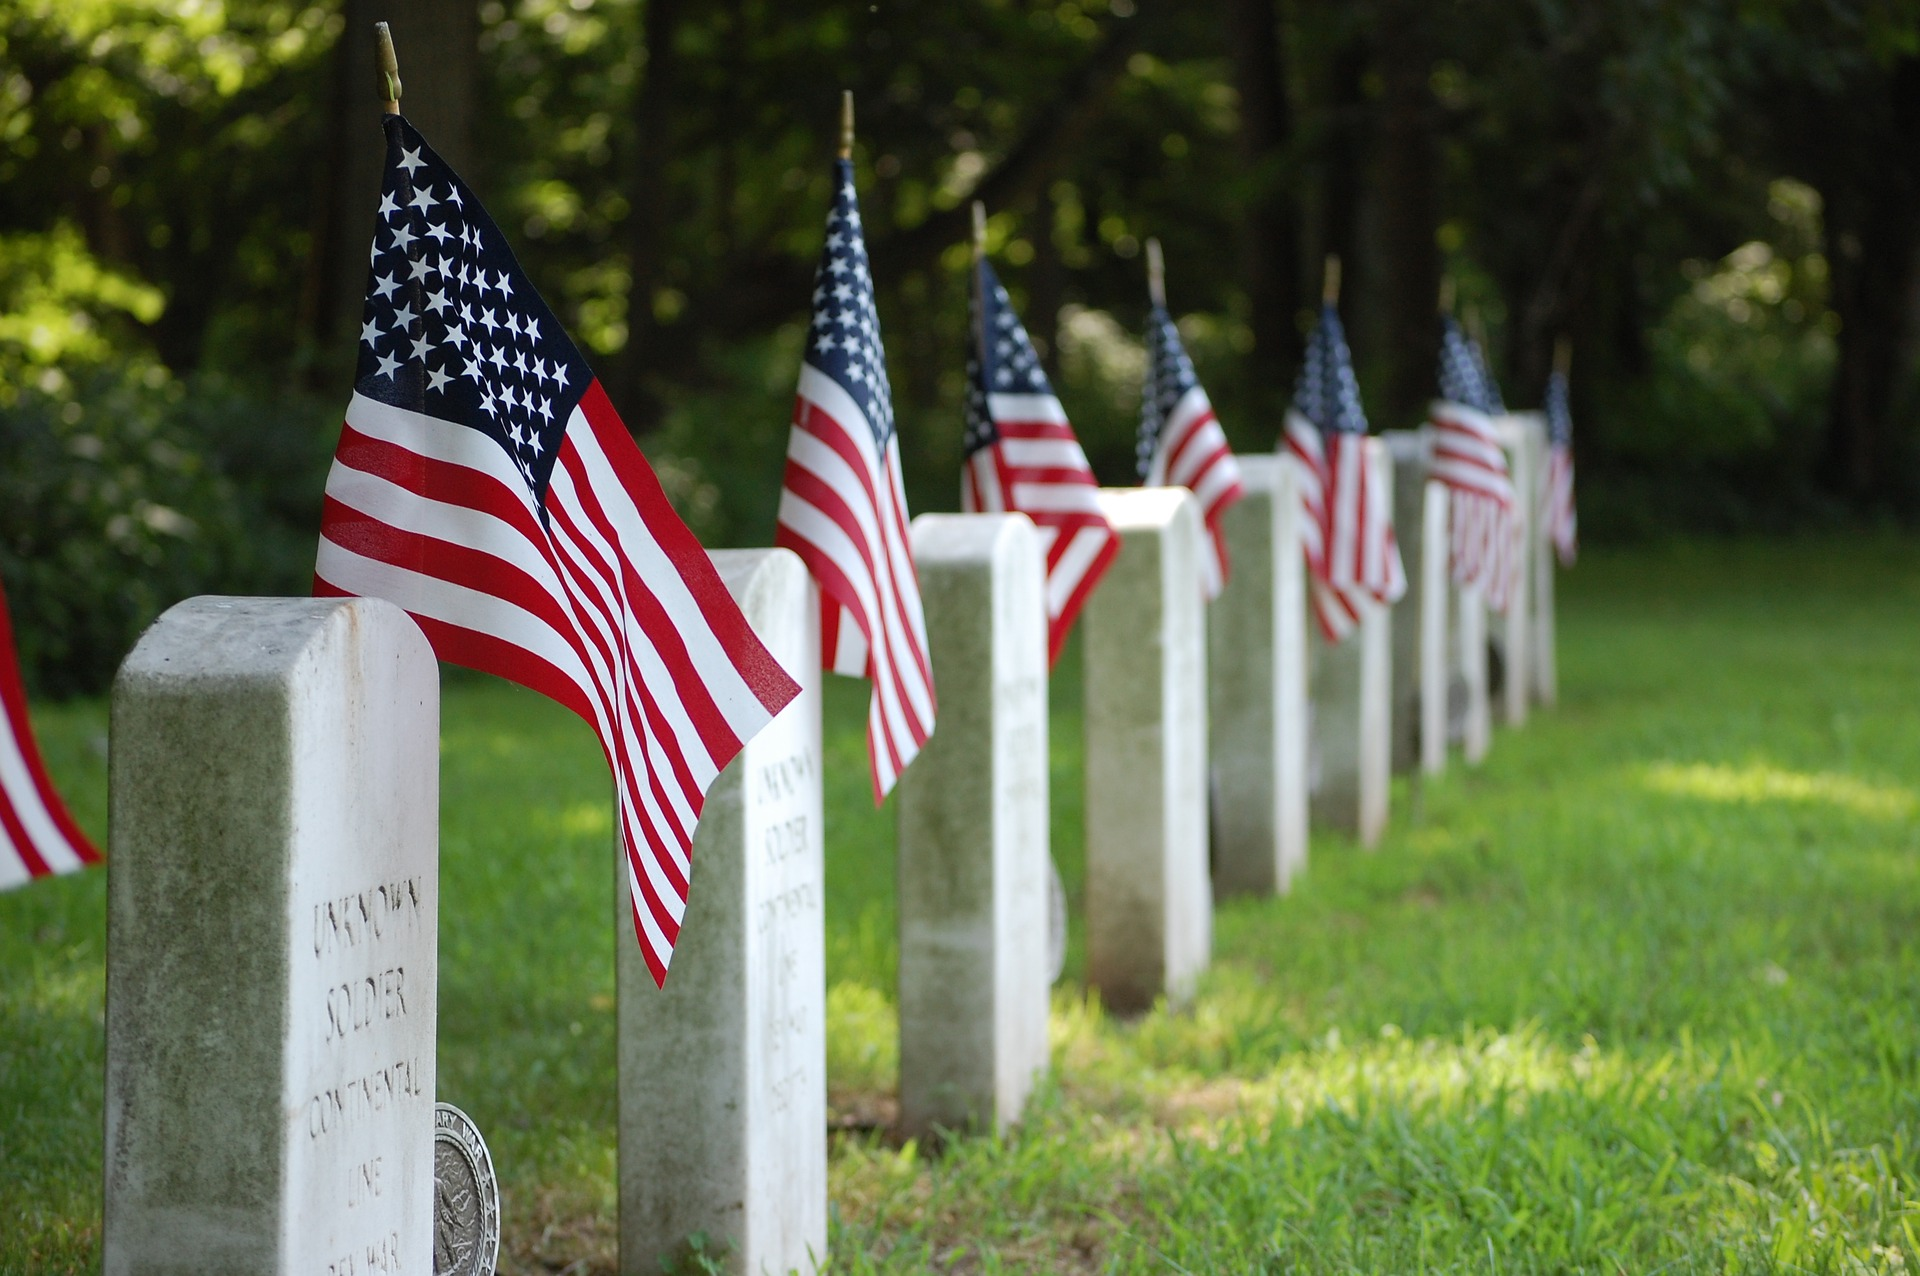 American flags stand guard over each gravestone in a military cemetery